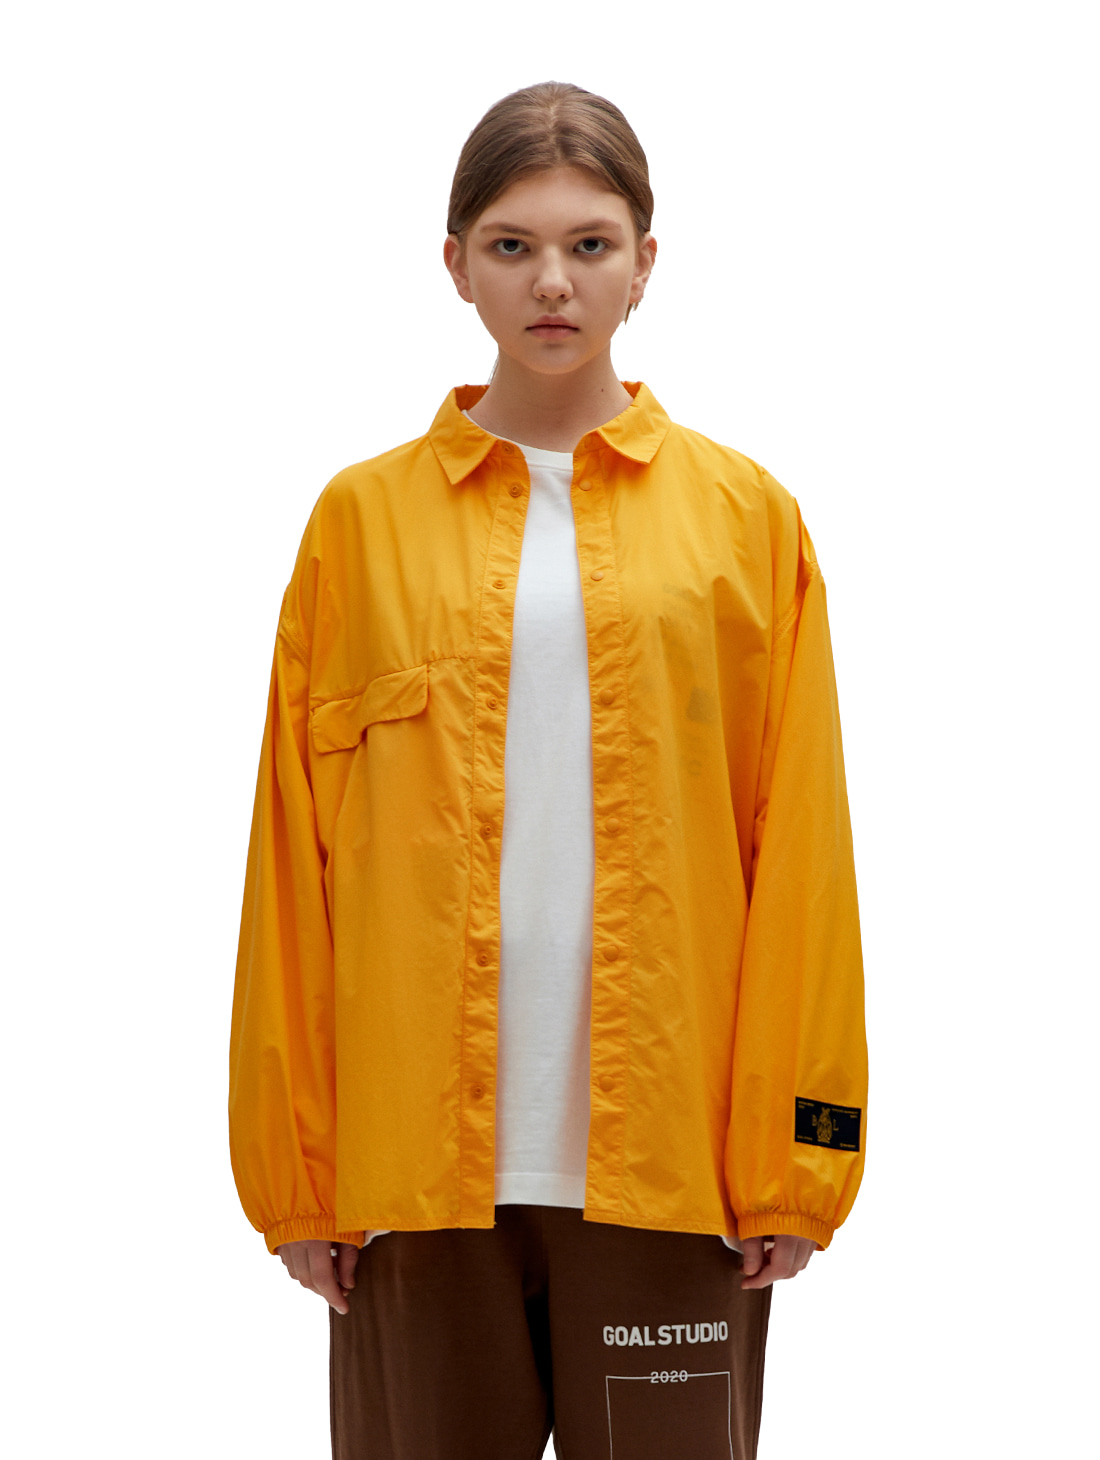 GOALSTUDIO SSFC WINDBREAKER SHIRT - YELLOW